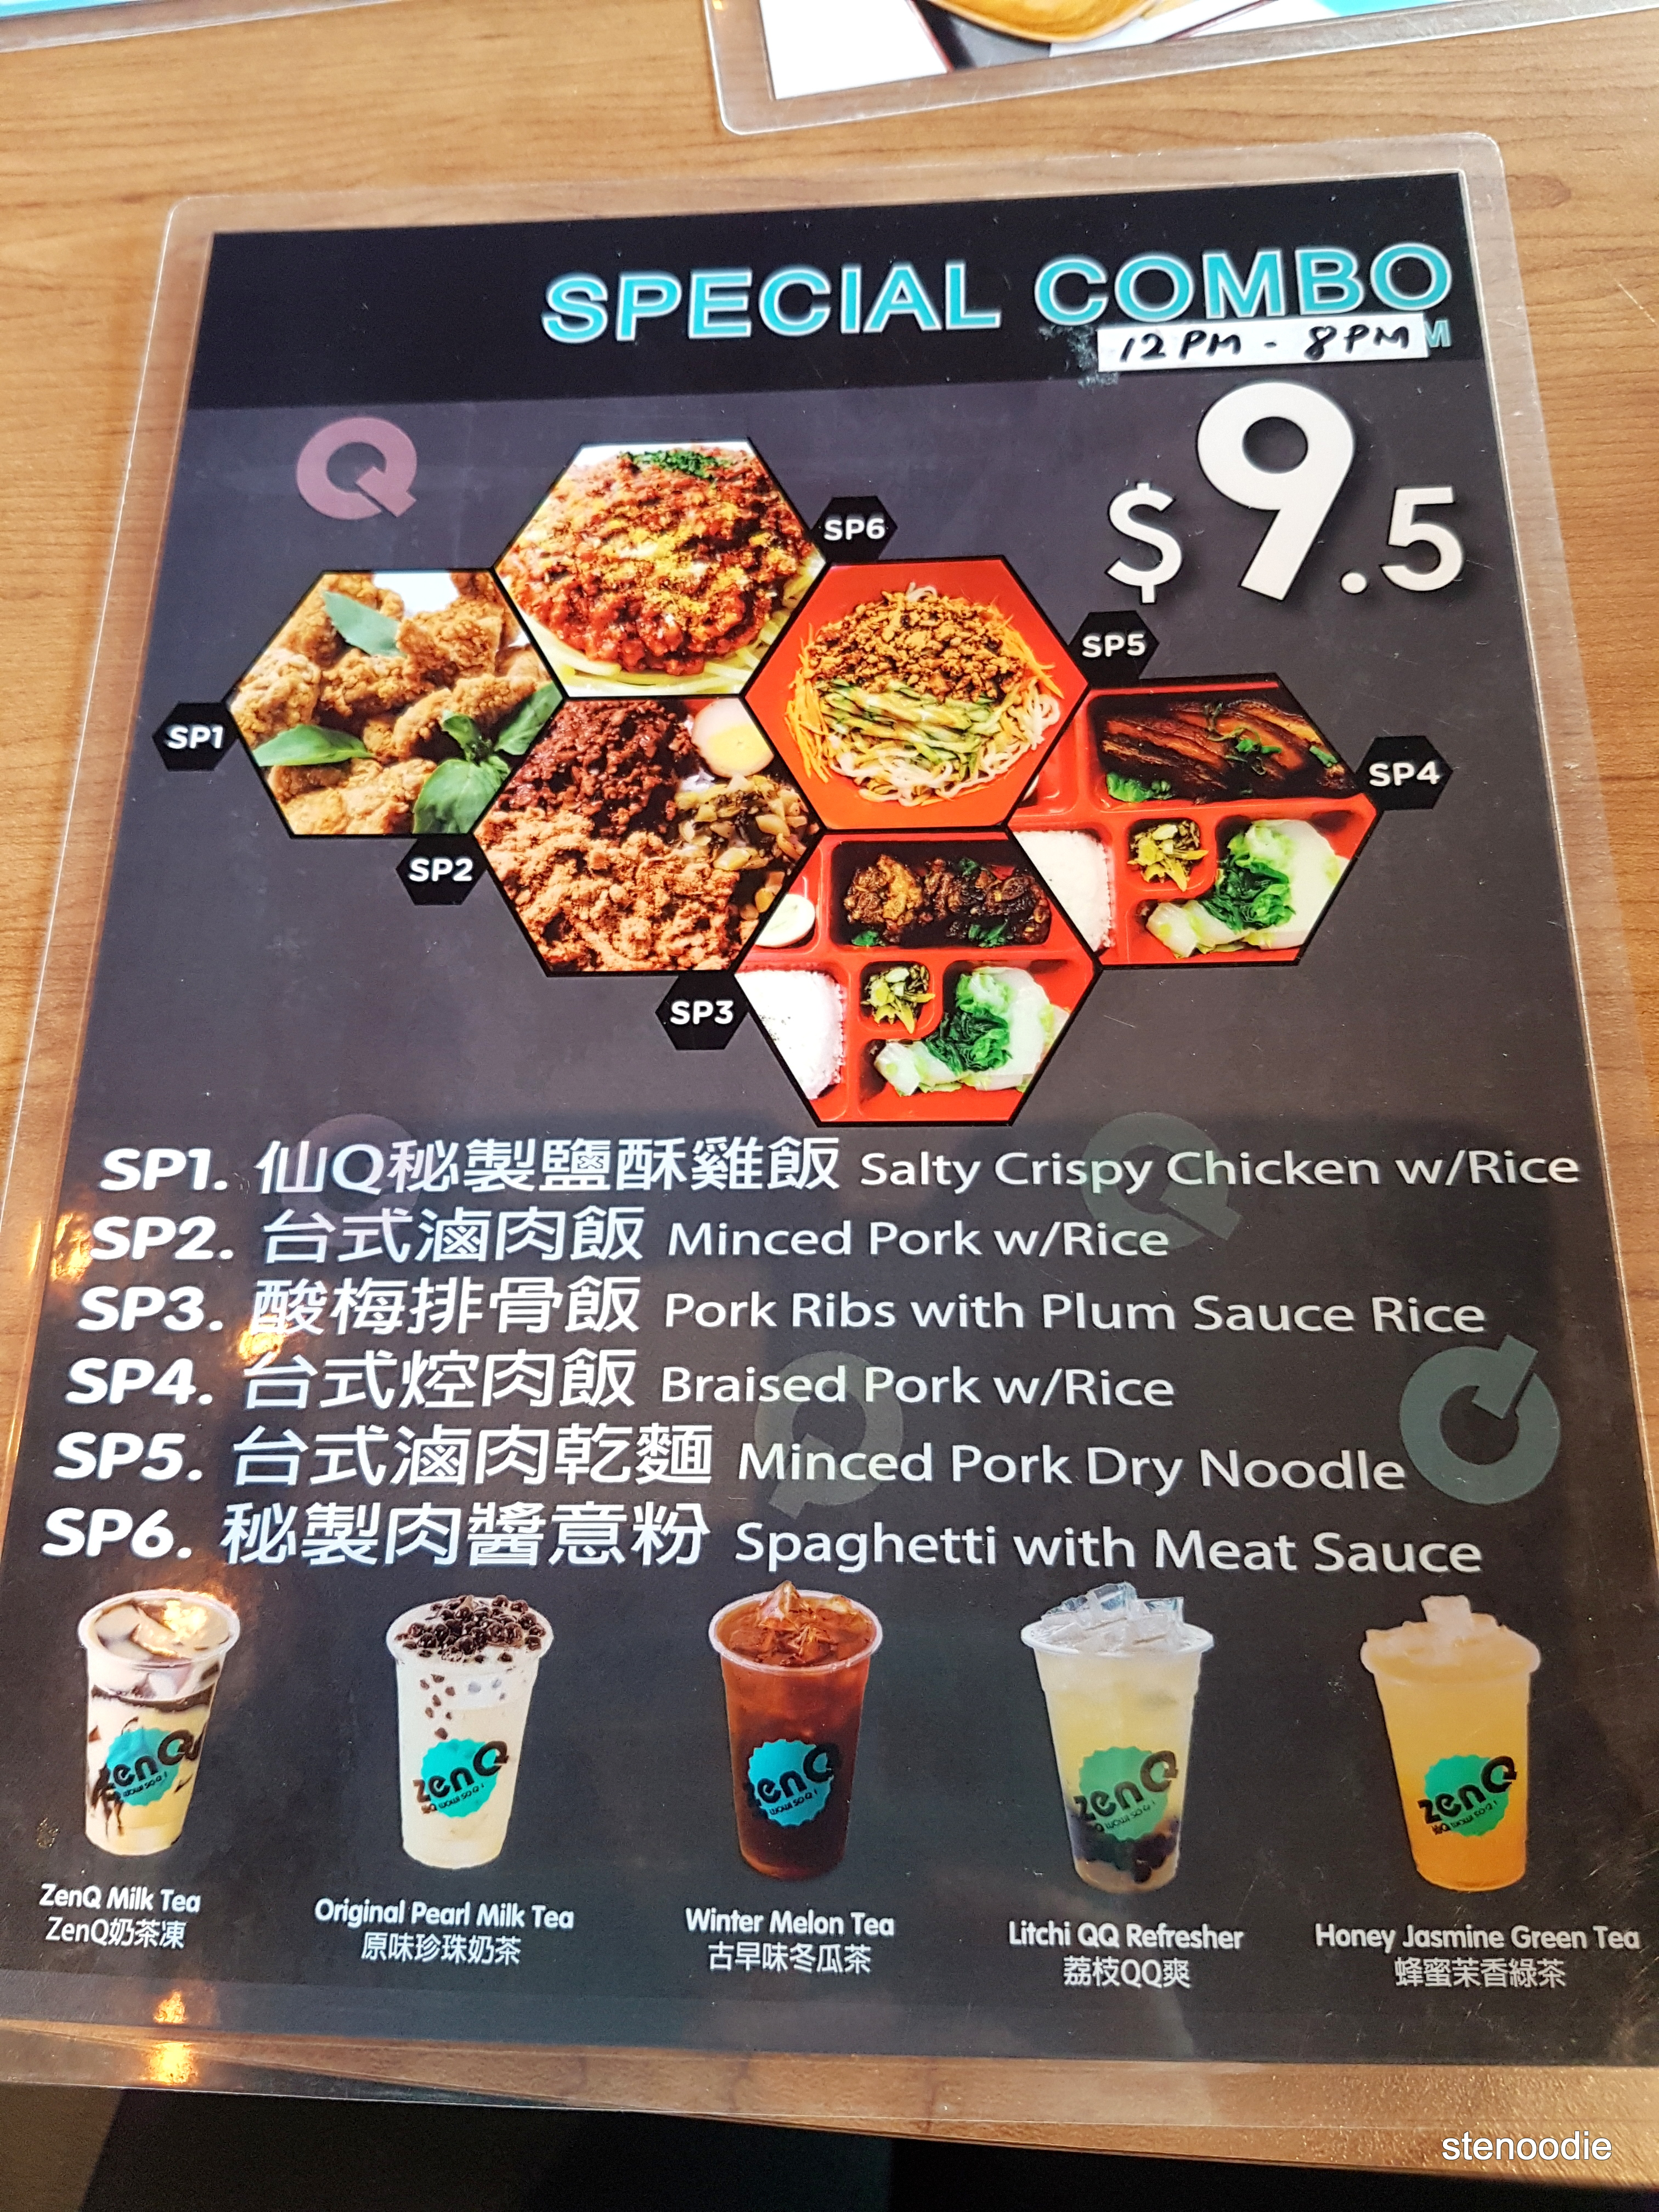 Special combo menu from 12 to 8 p.m.